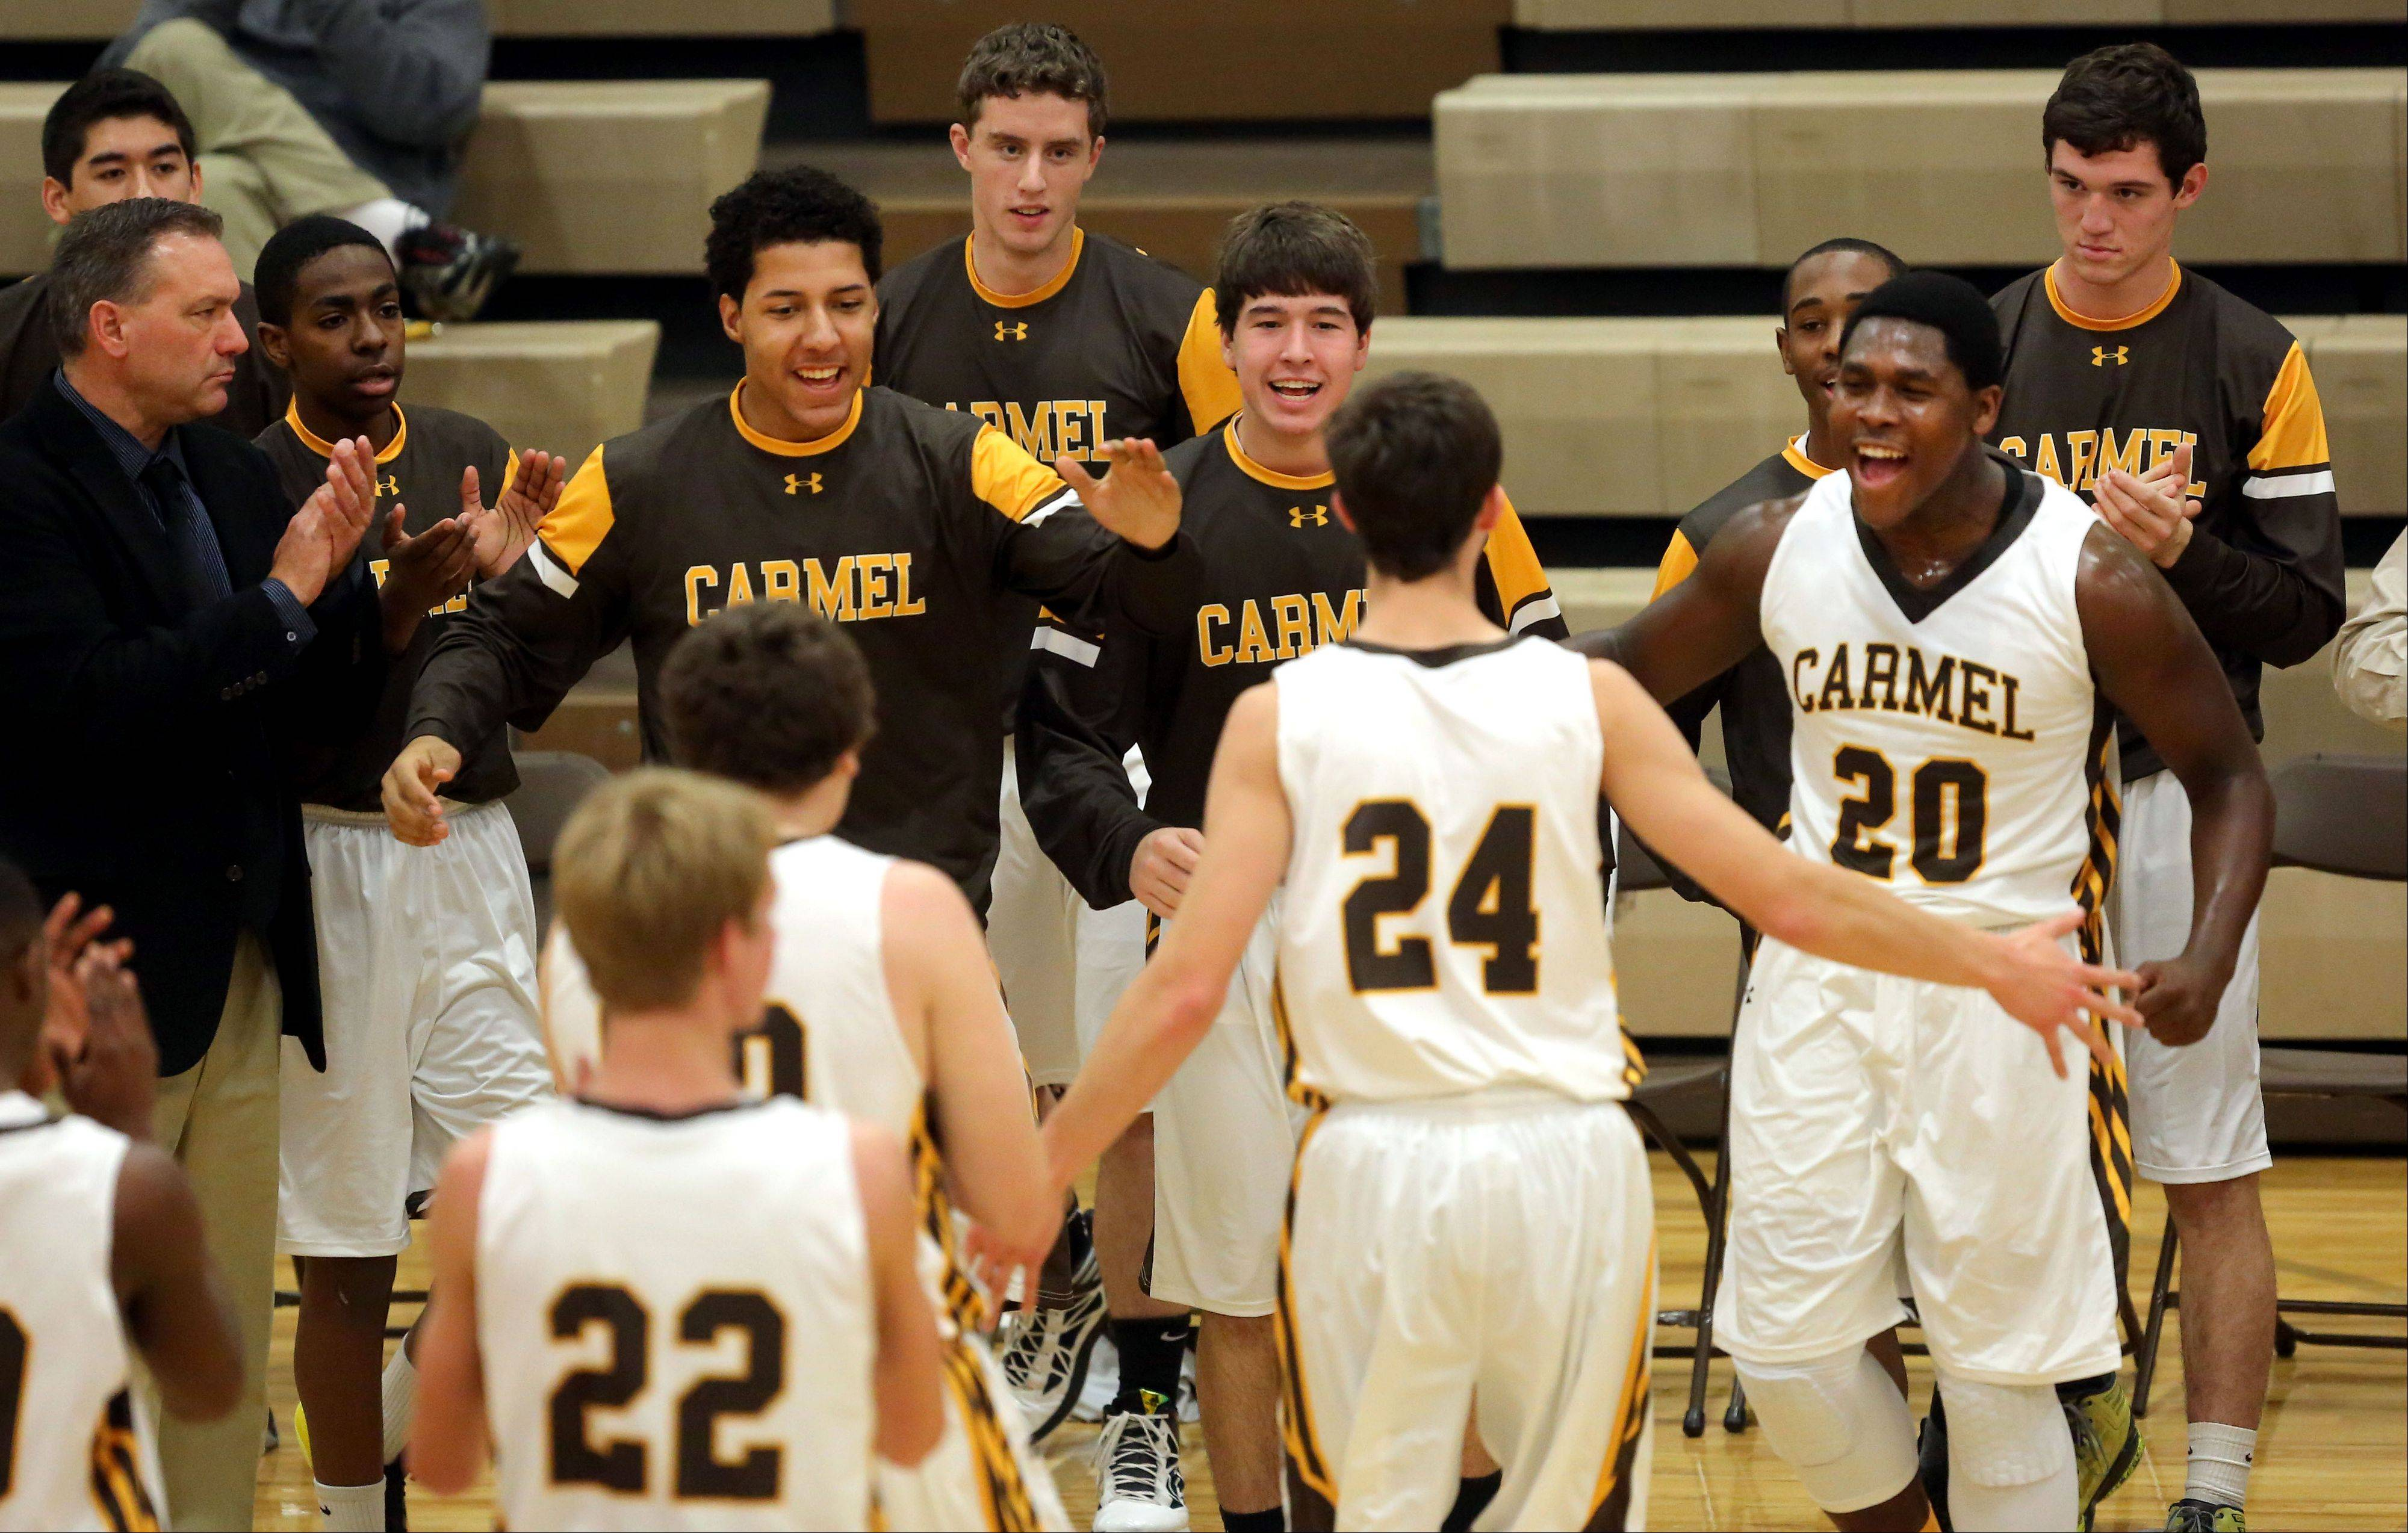 The Carmel bench celebrates after a timeout against Vernon Hills on Wednesday night at Carmel Catholic.